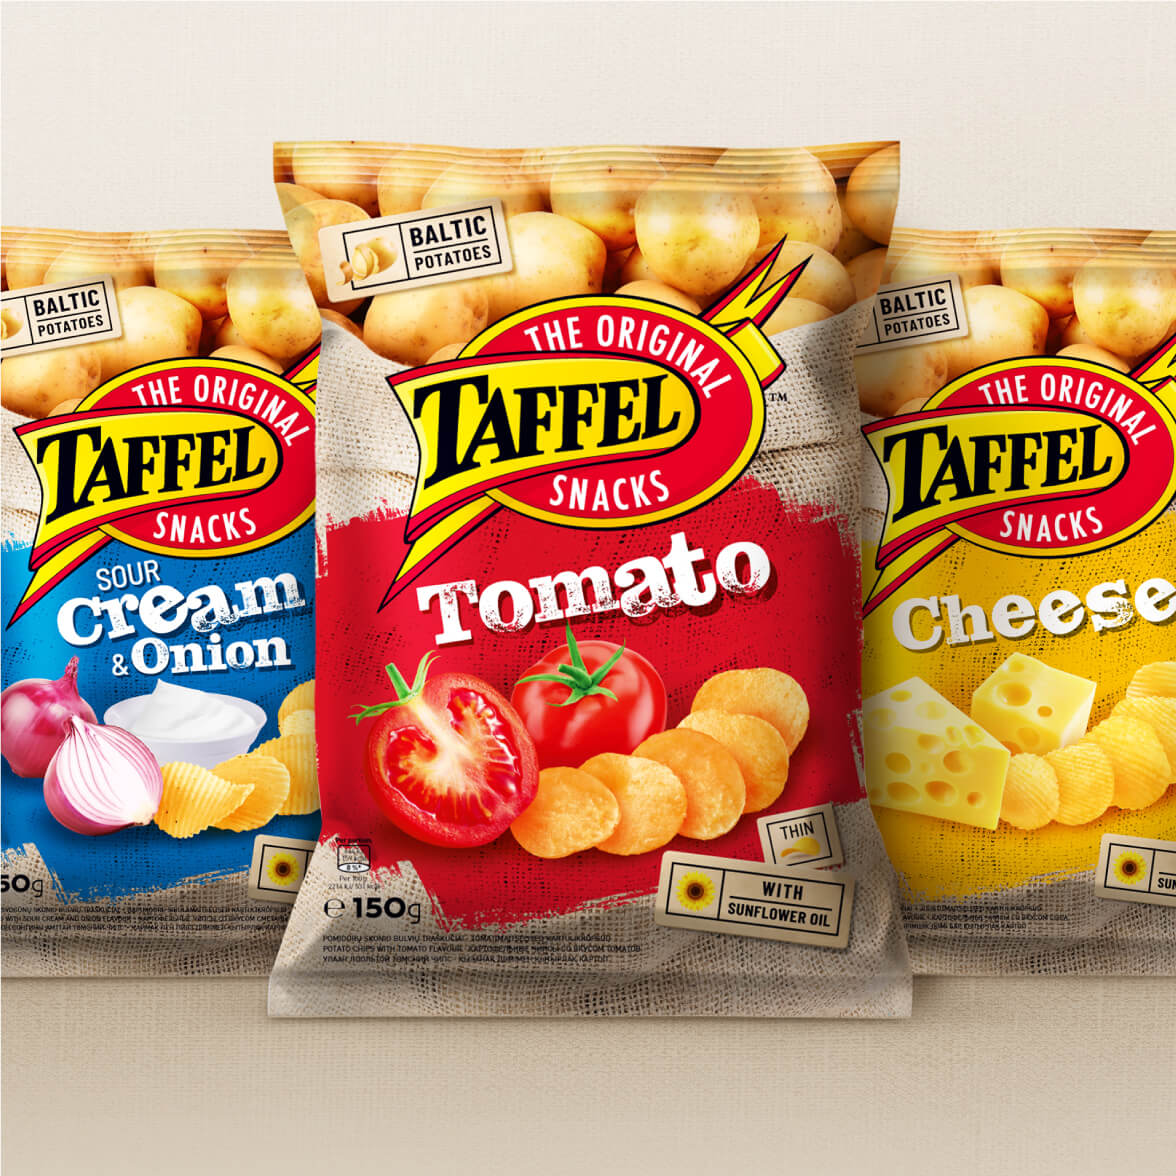 Taffel Chips - packaging redesign